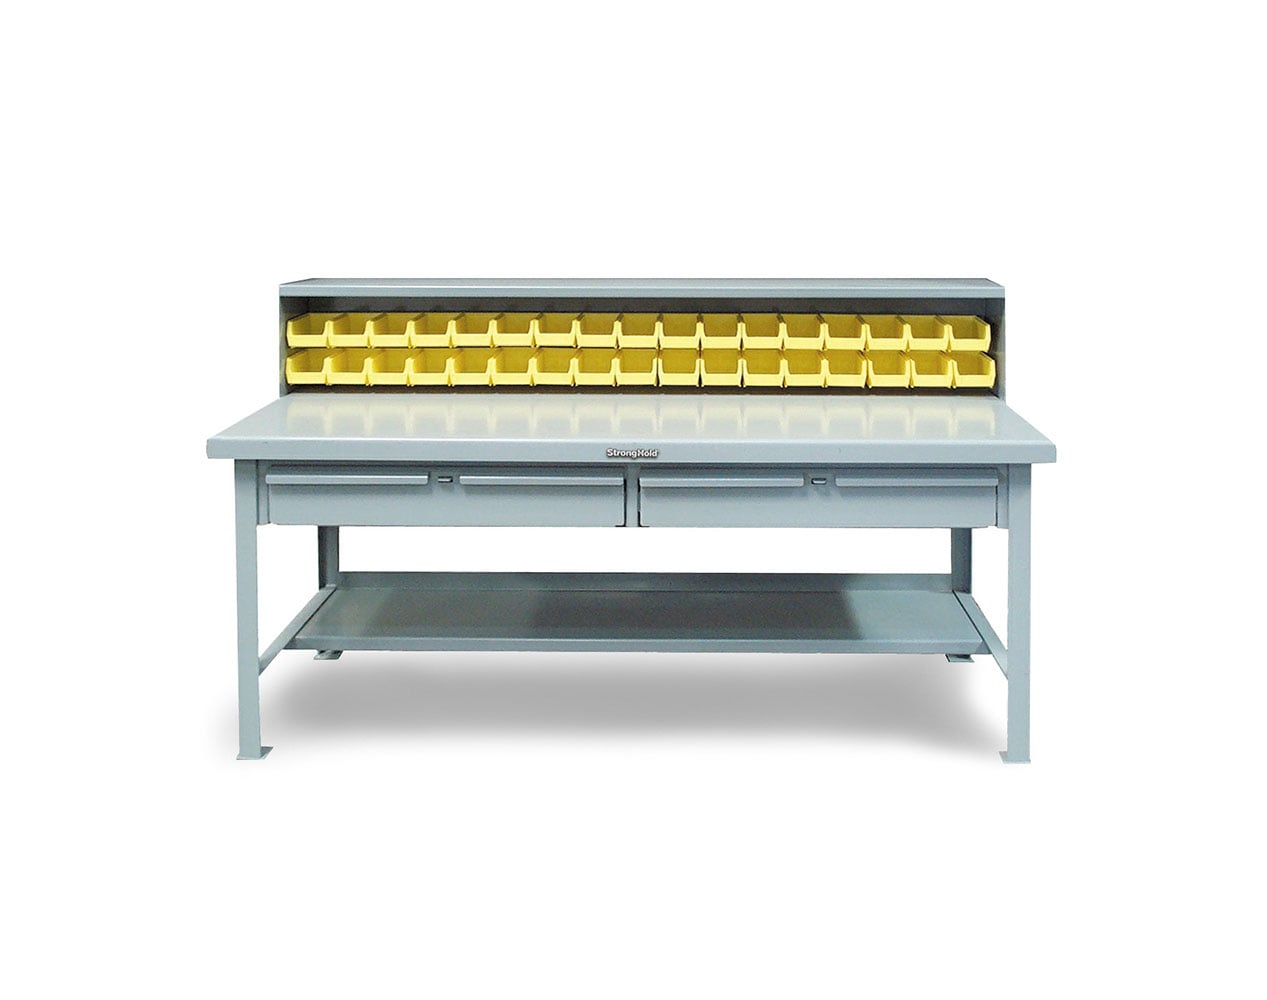 Extra Heavy Duty 7 GA Shop Table with Riser Shelf, 34 Bins, 2 Drawers – 72 In. W x 30 In. D x 48 In. H